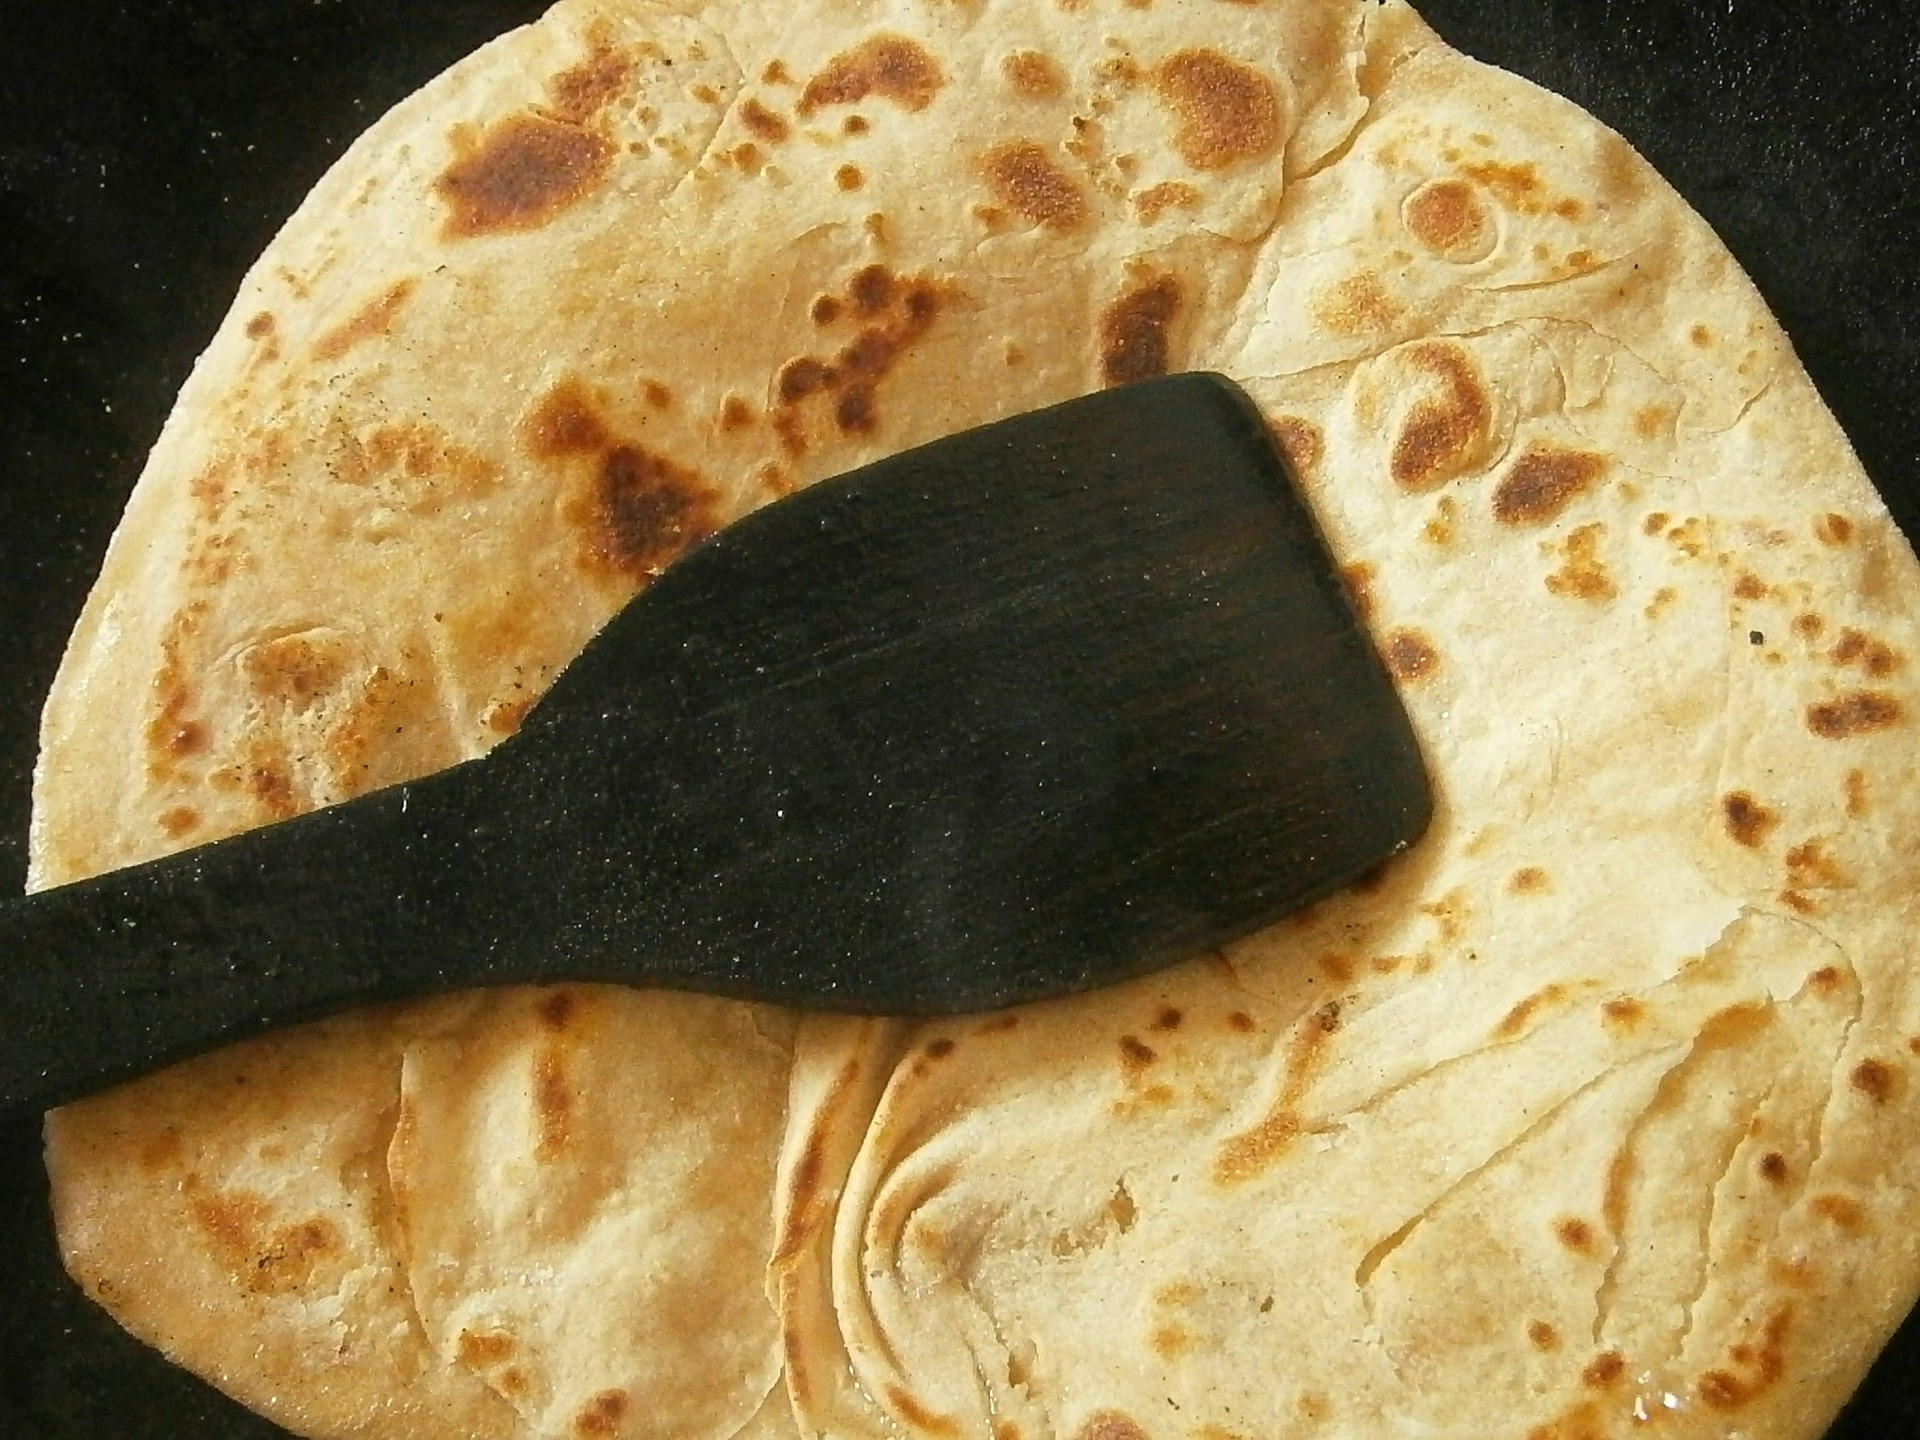 Flatbread with a black spatula